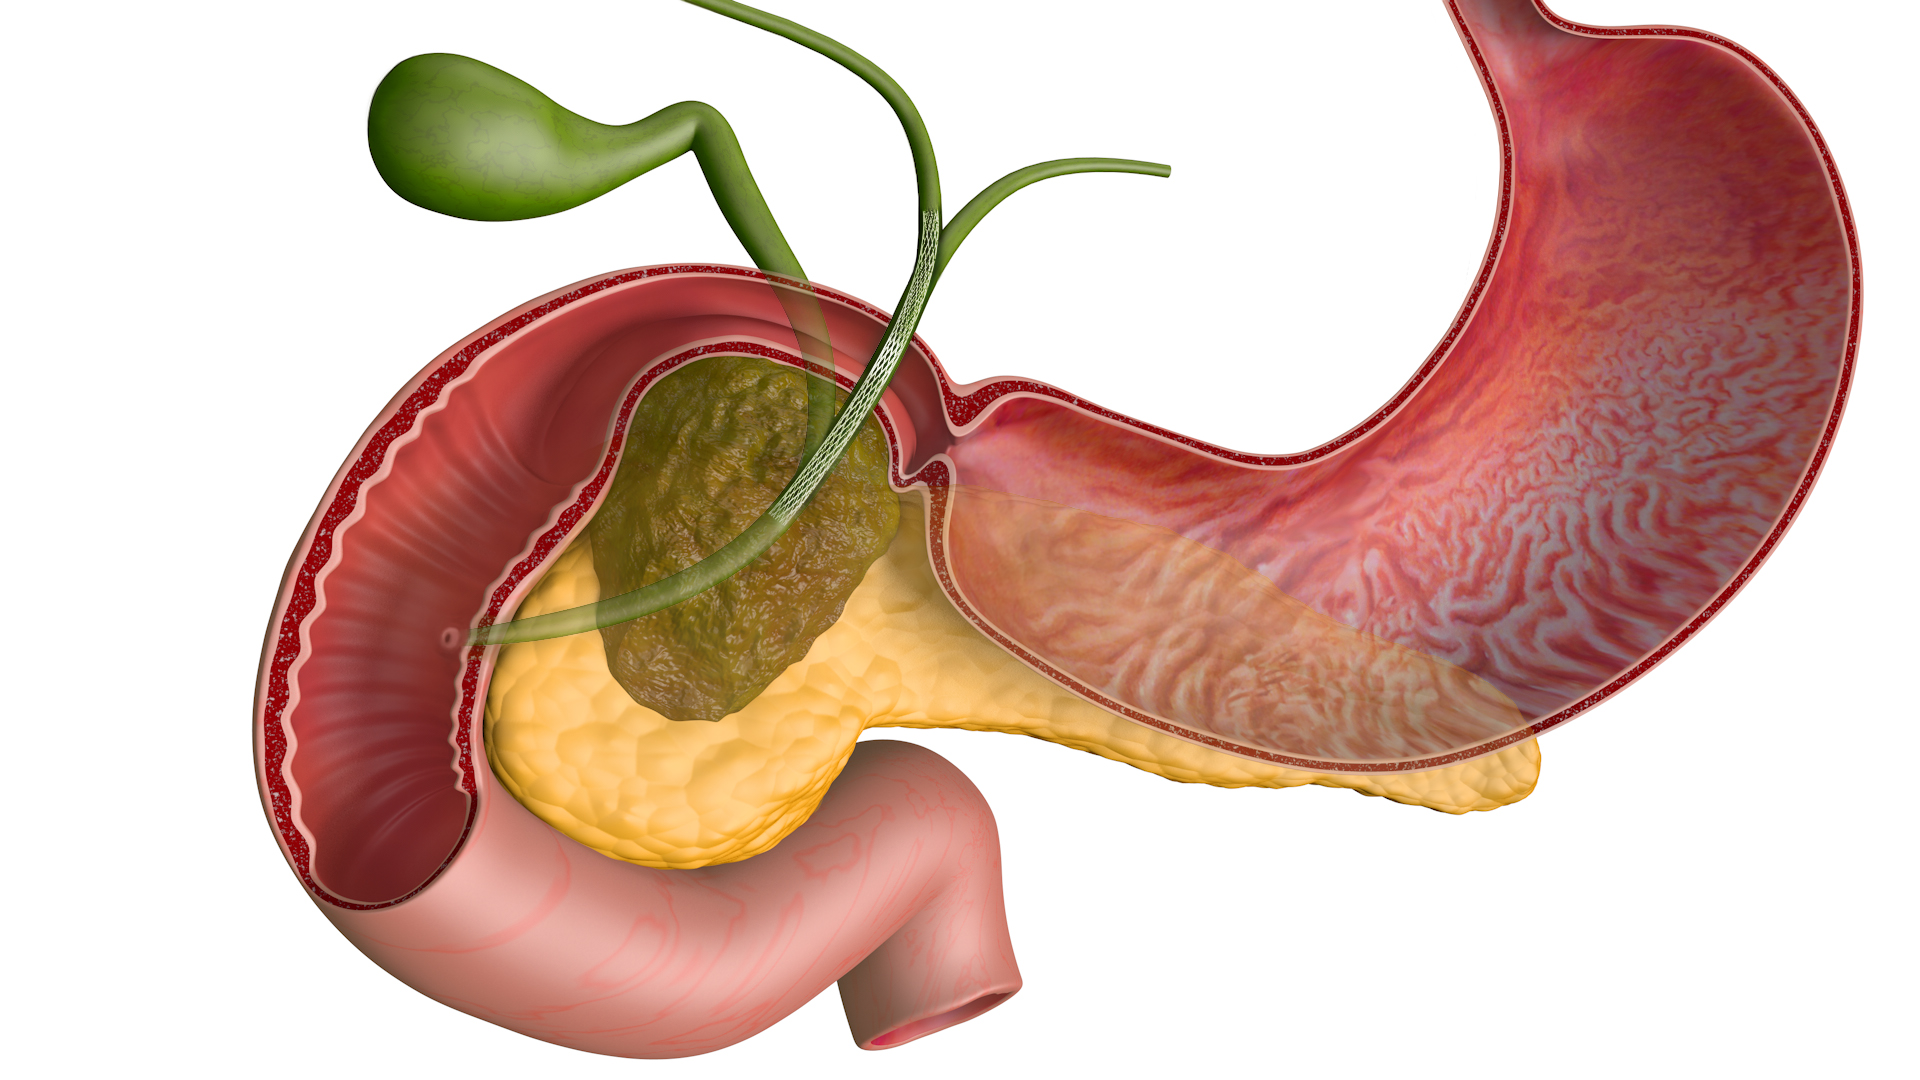 pancreas anatomy diagram trailer hitches location of liver in human body free engine